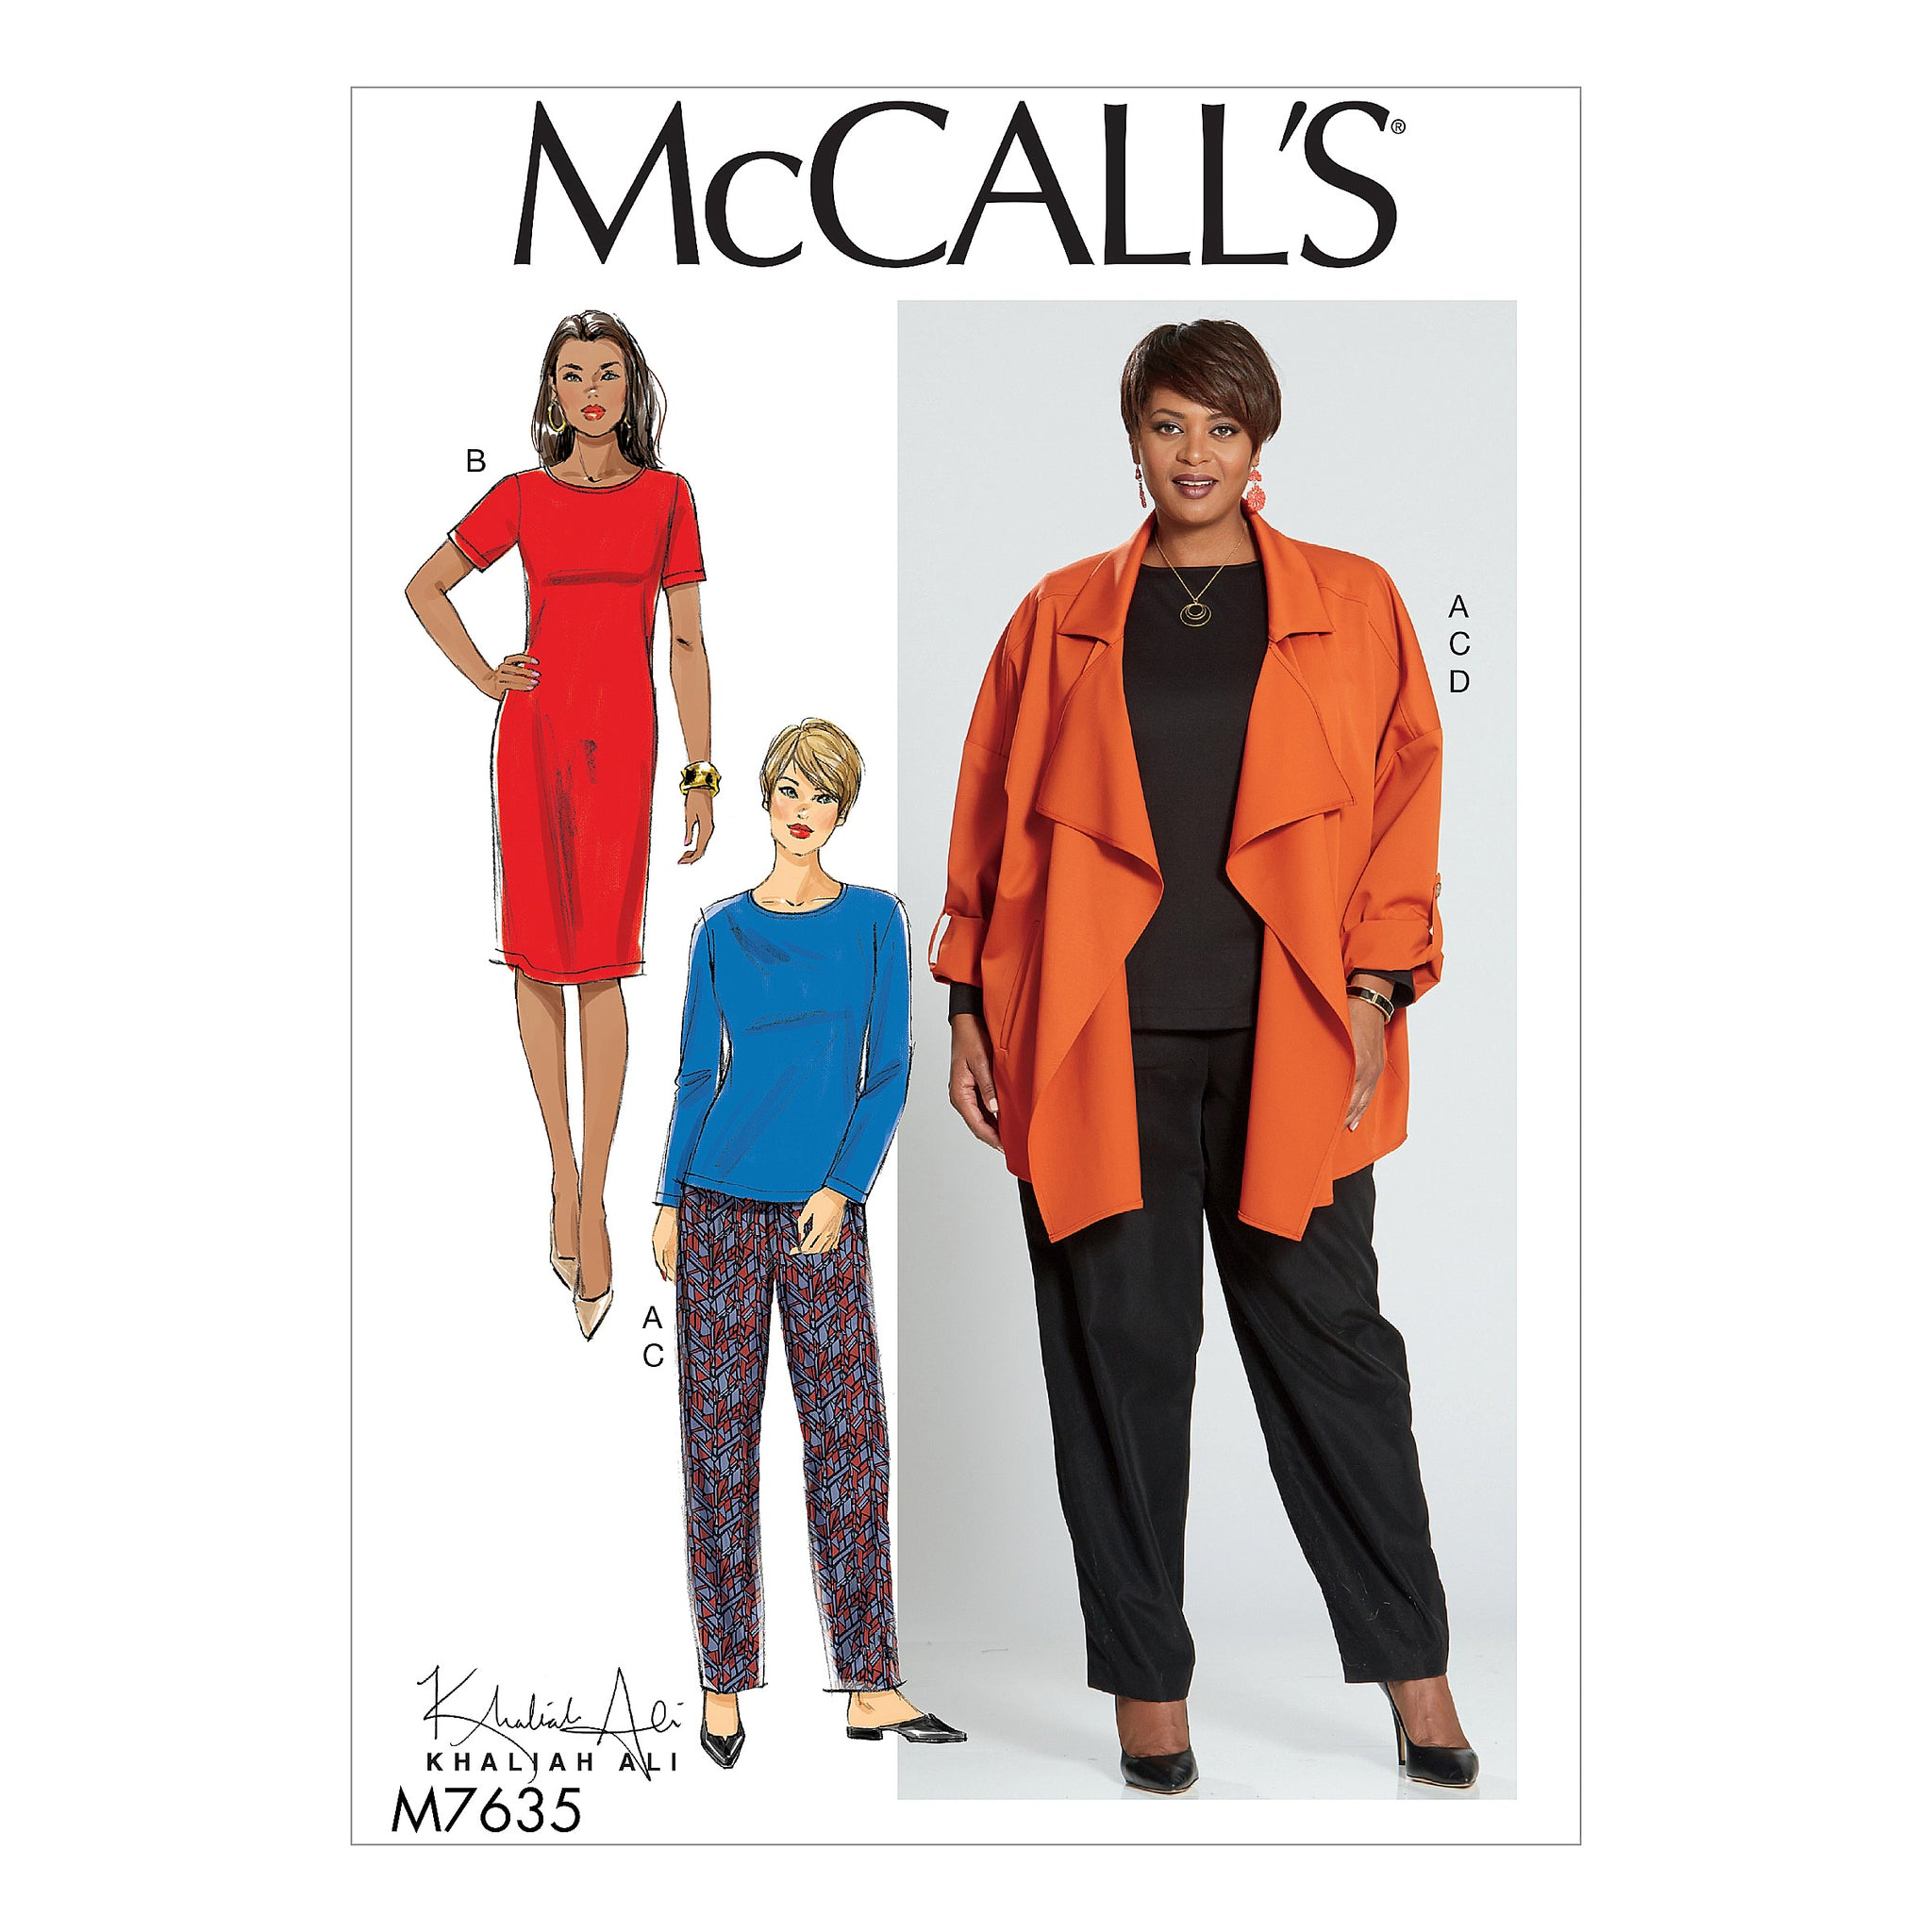 McCall's M7635RR0 Misses'/Women's Top, Dress, Pants, and Jacket 18W-20W-22W-24W